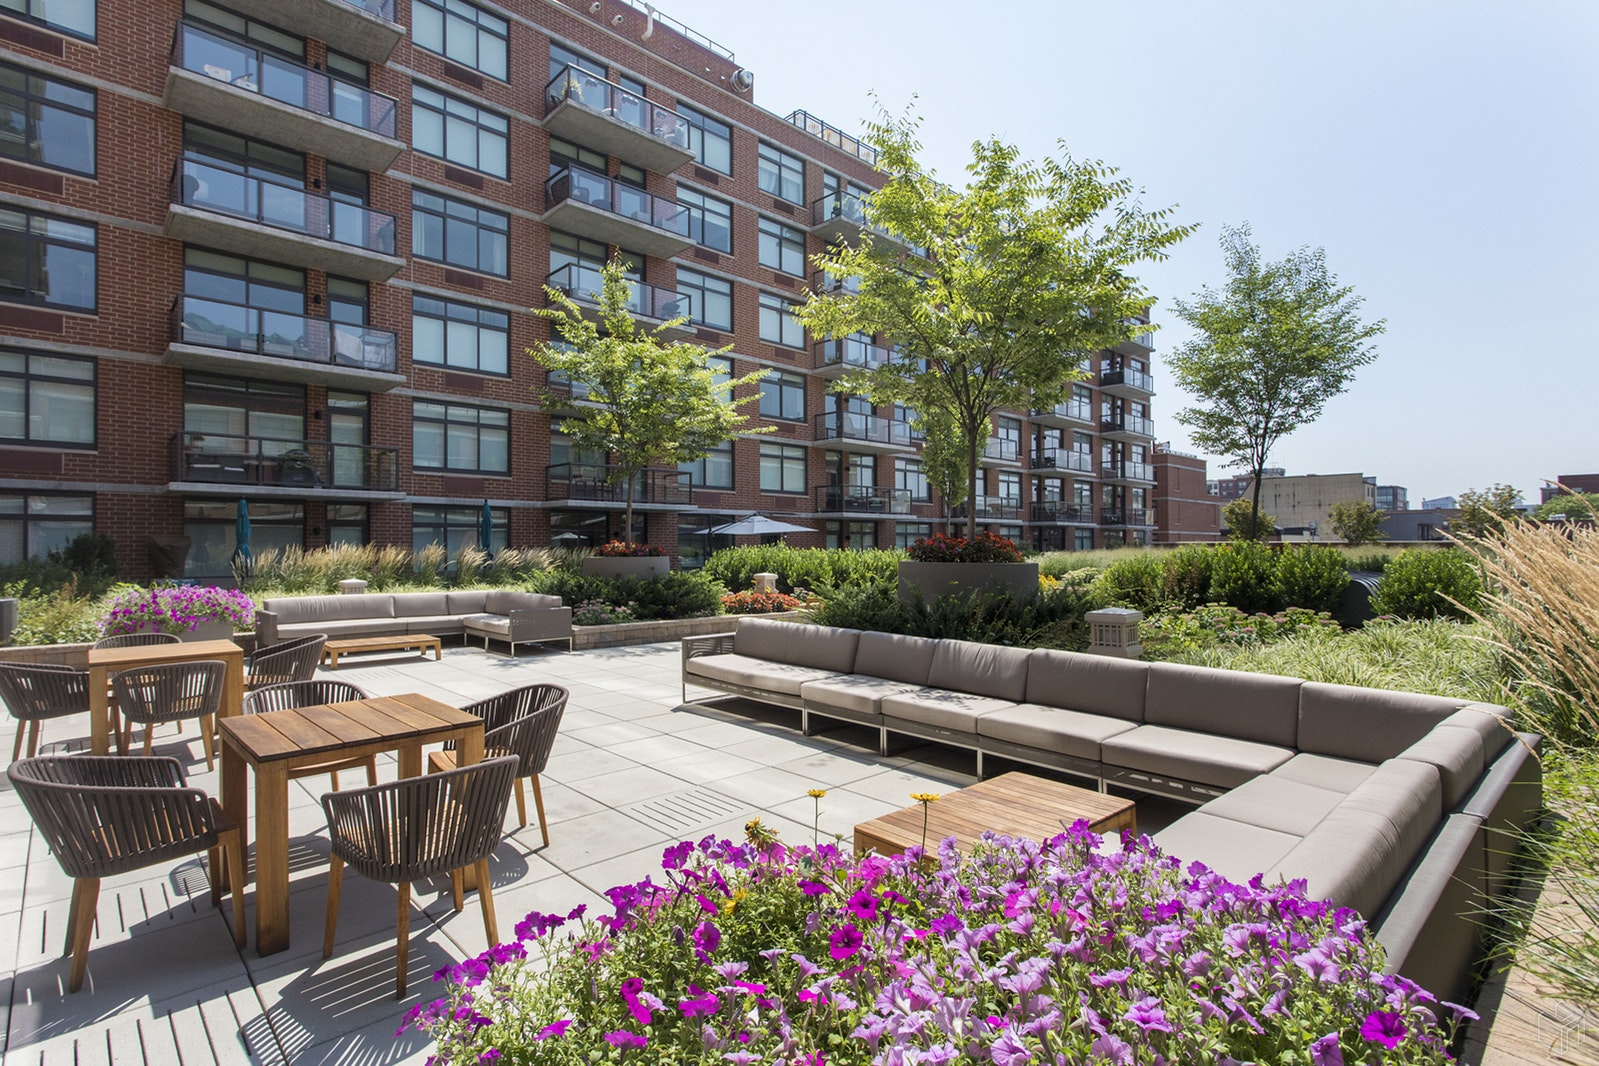 1400 Hudson St 423, Hoboken, New Jersey, 07030, $699,000, Property For Sale, Halstead Real Estate, Photo 14